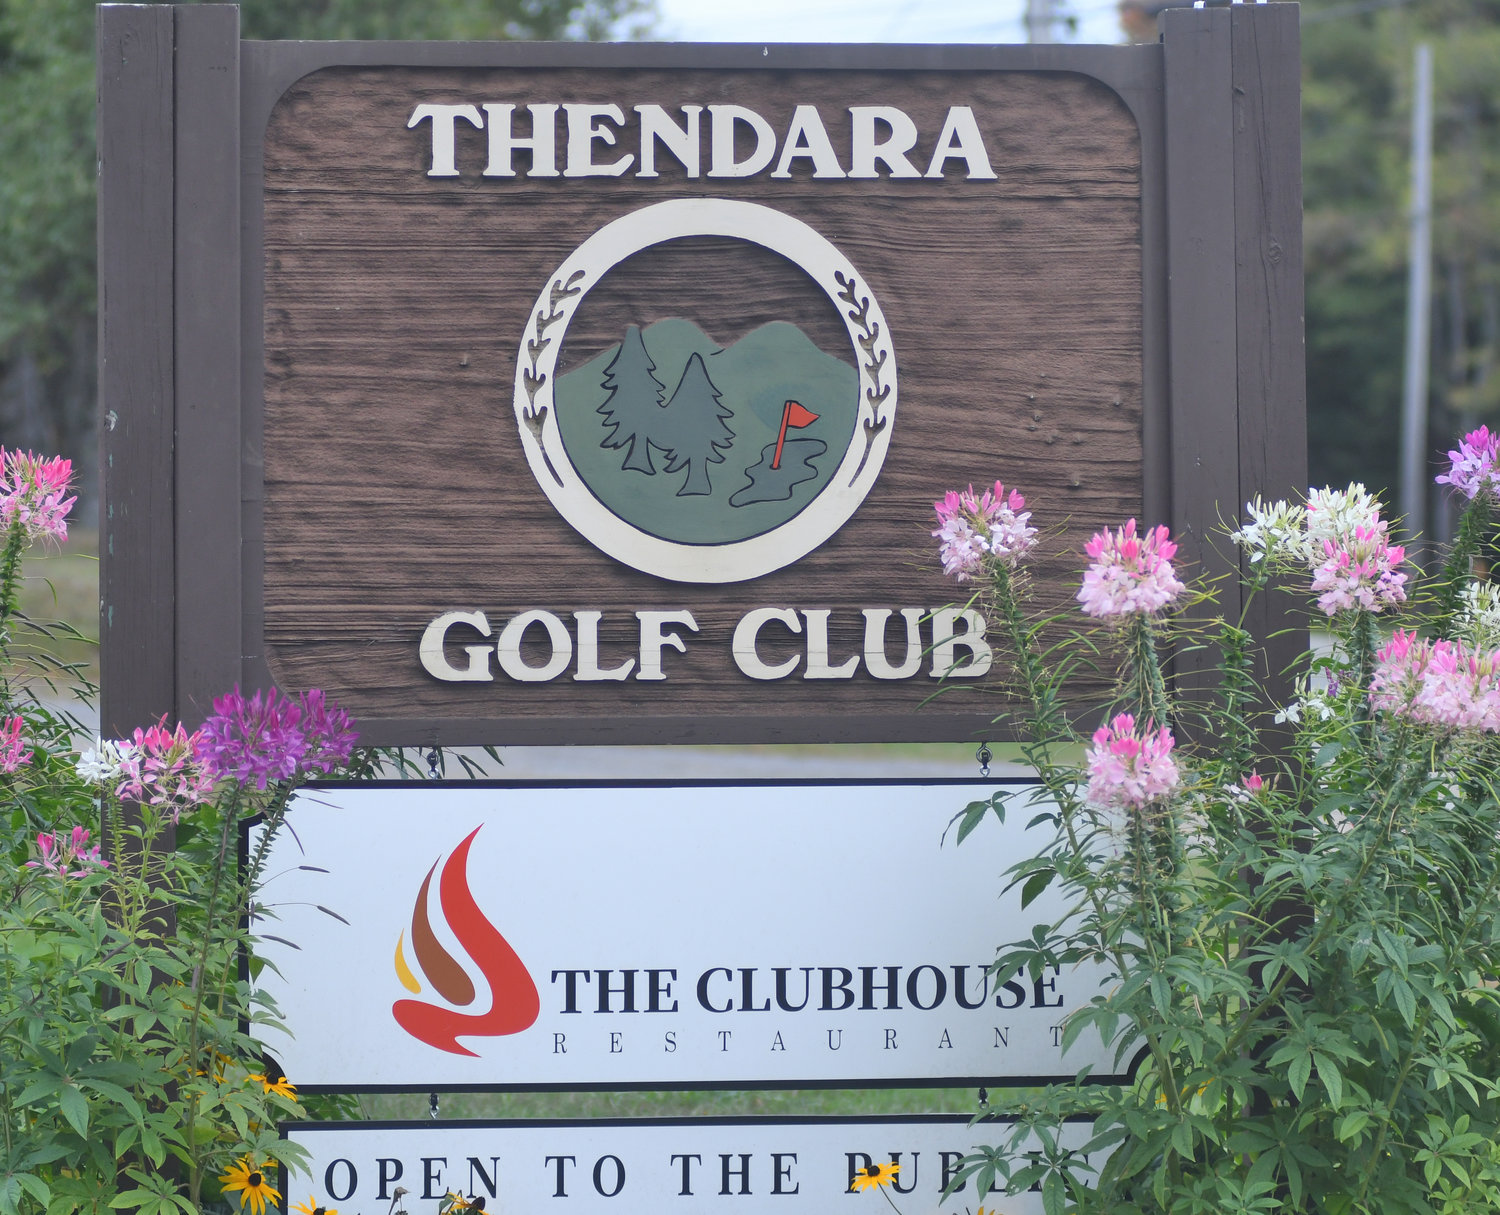 SIGN OFF THE ROAD — A sign for Thendara Golf Club off of Route 28.